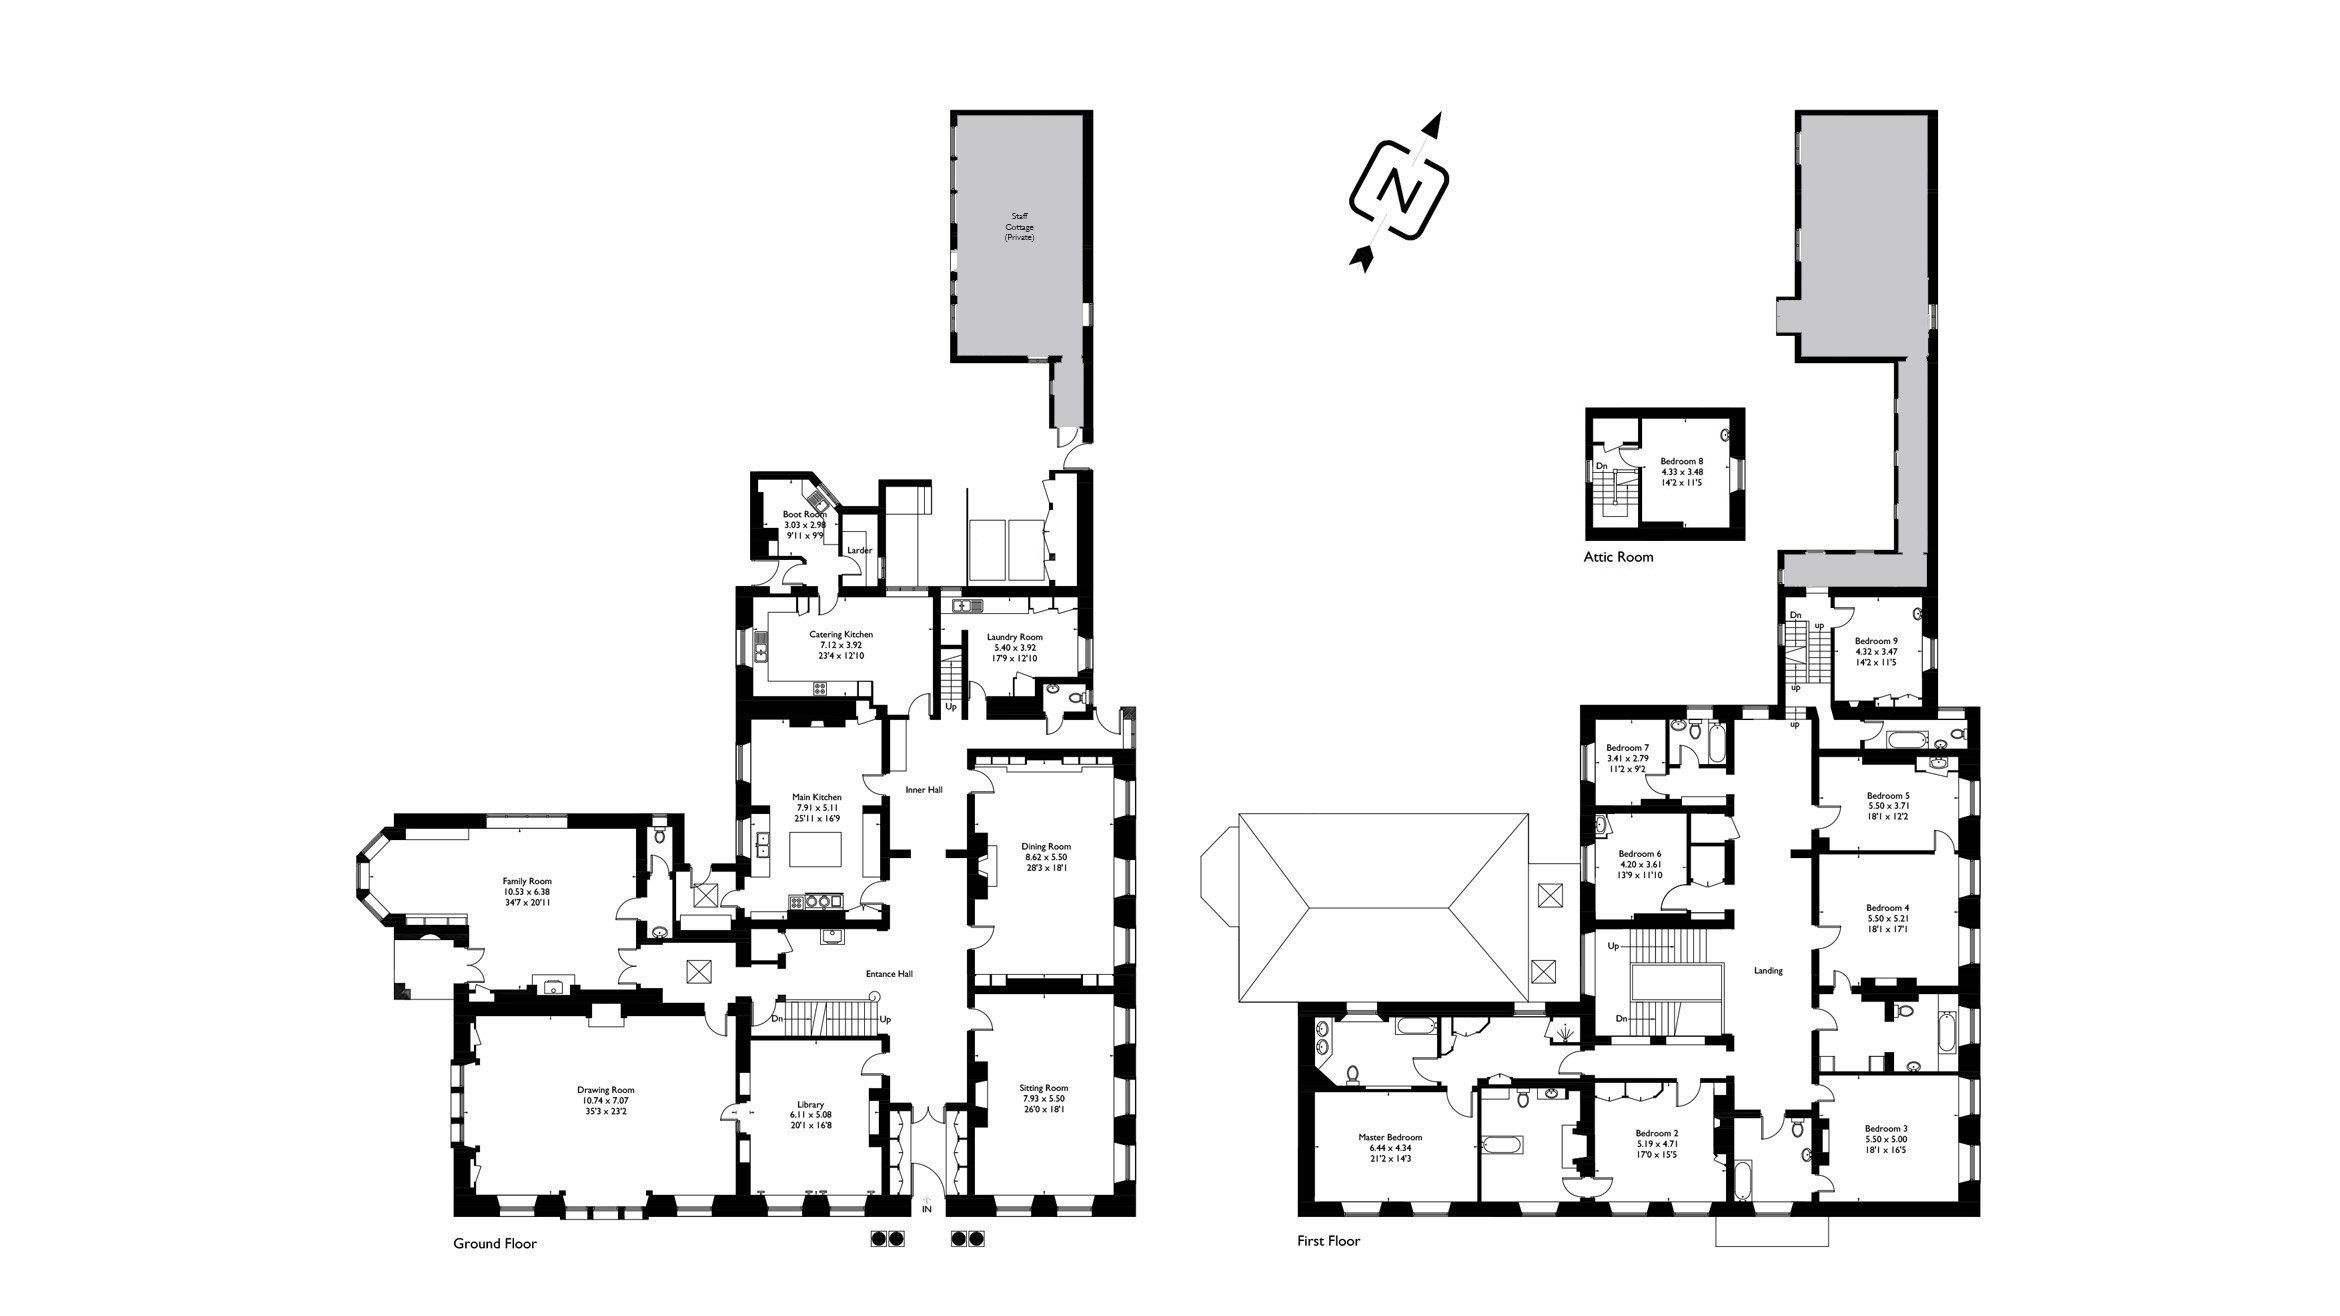 View the floorplan of Norton Hall Mickelton